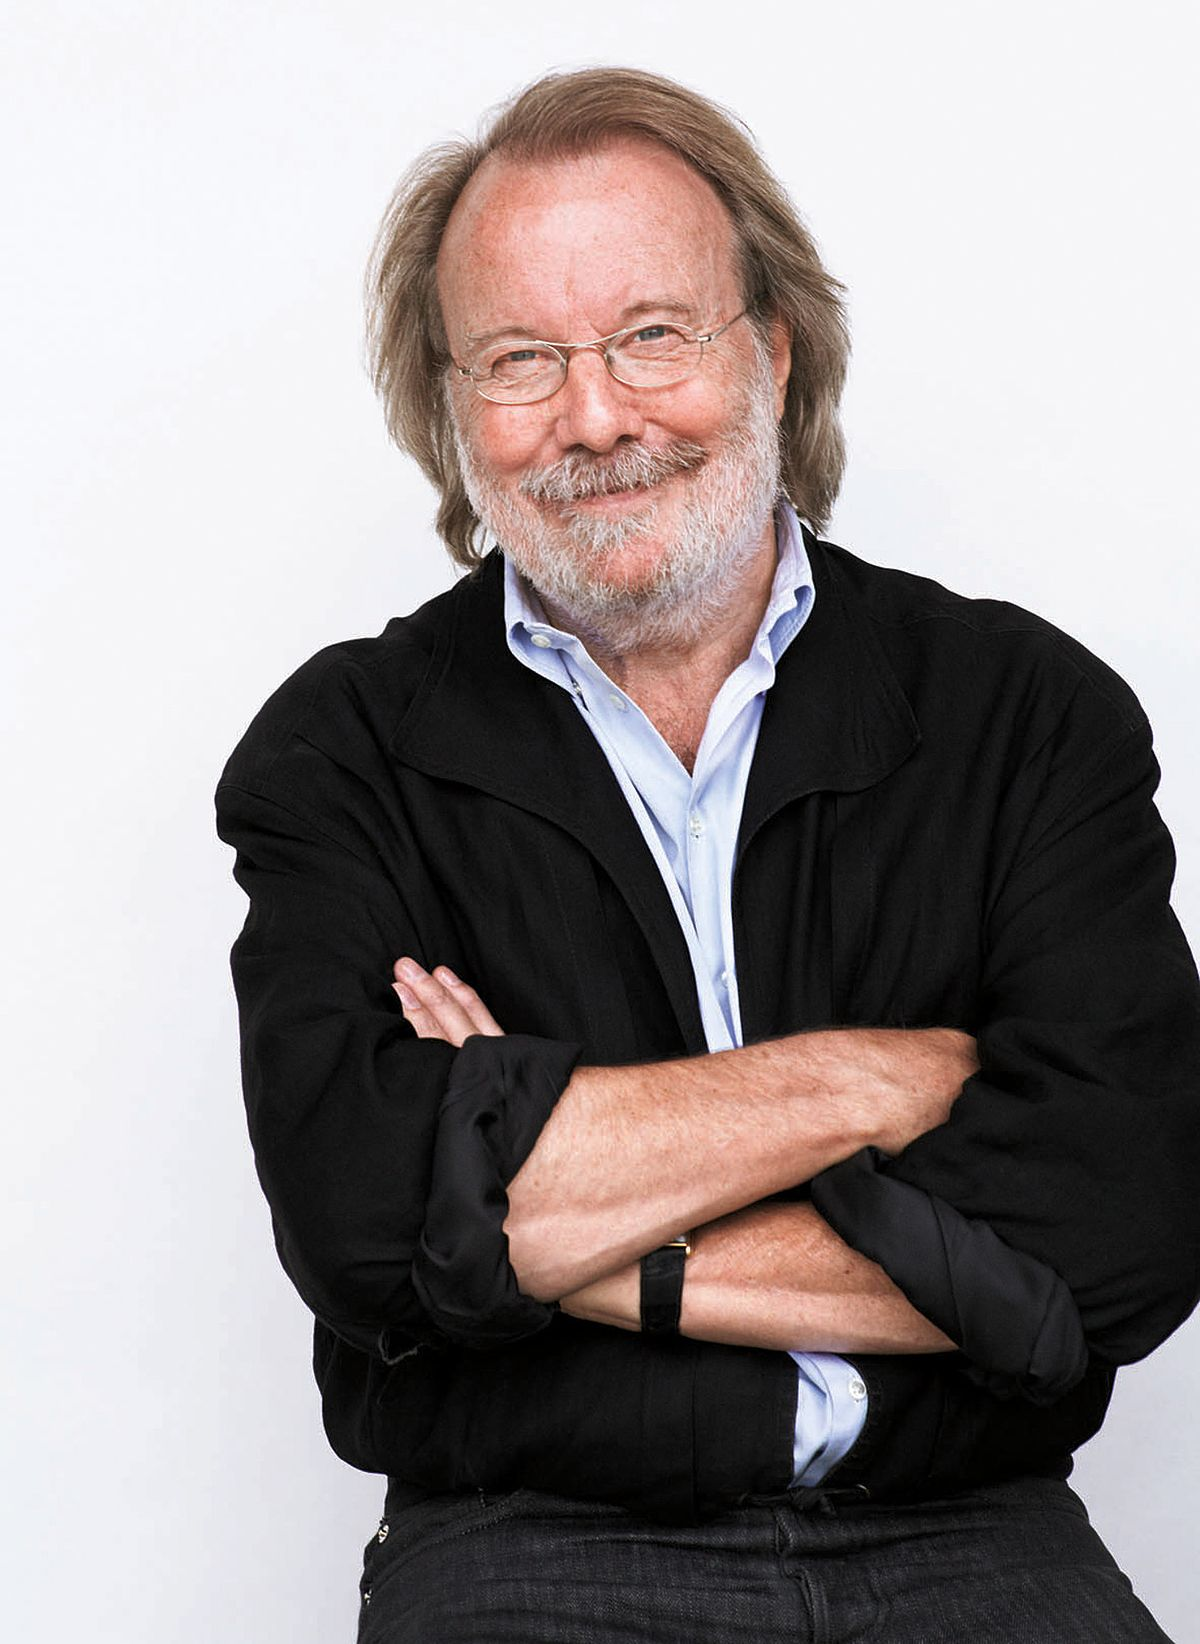 Benny Andersson 2017, What does ABBA look like now, current picture of ABBA, what happened to ABBA?, celebs, Music